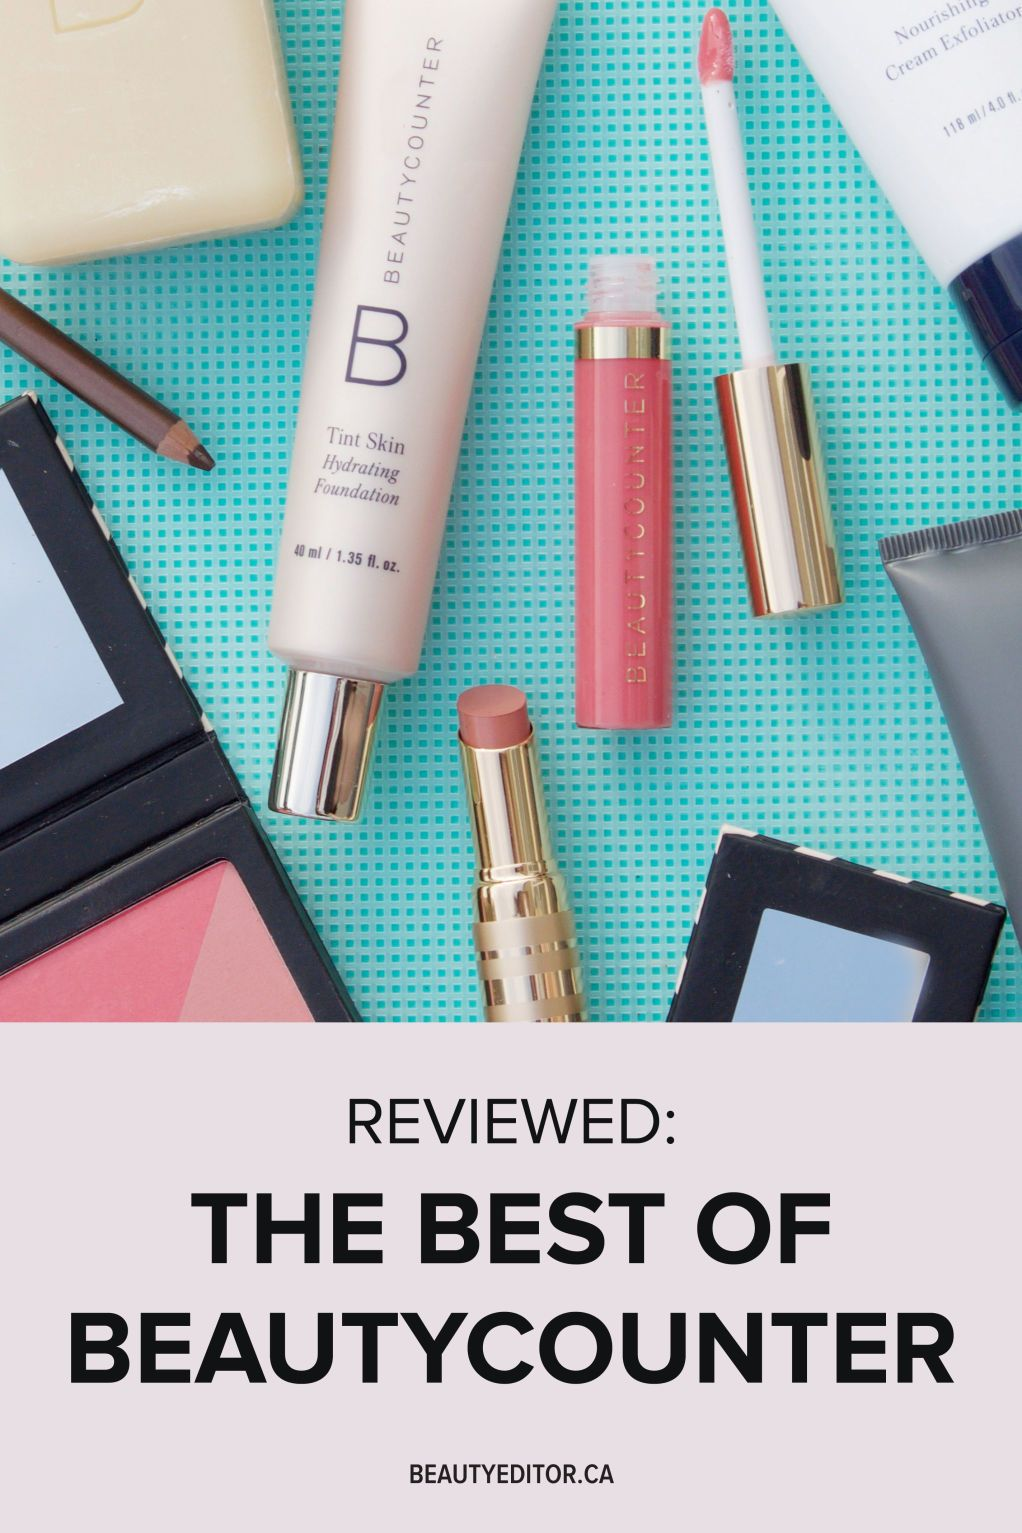 Editor's Picks 11 of the Best NonToxic Makeup and